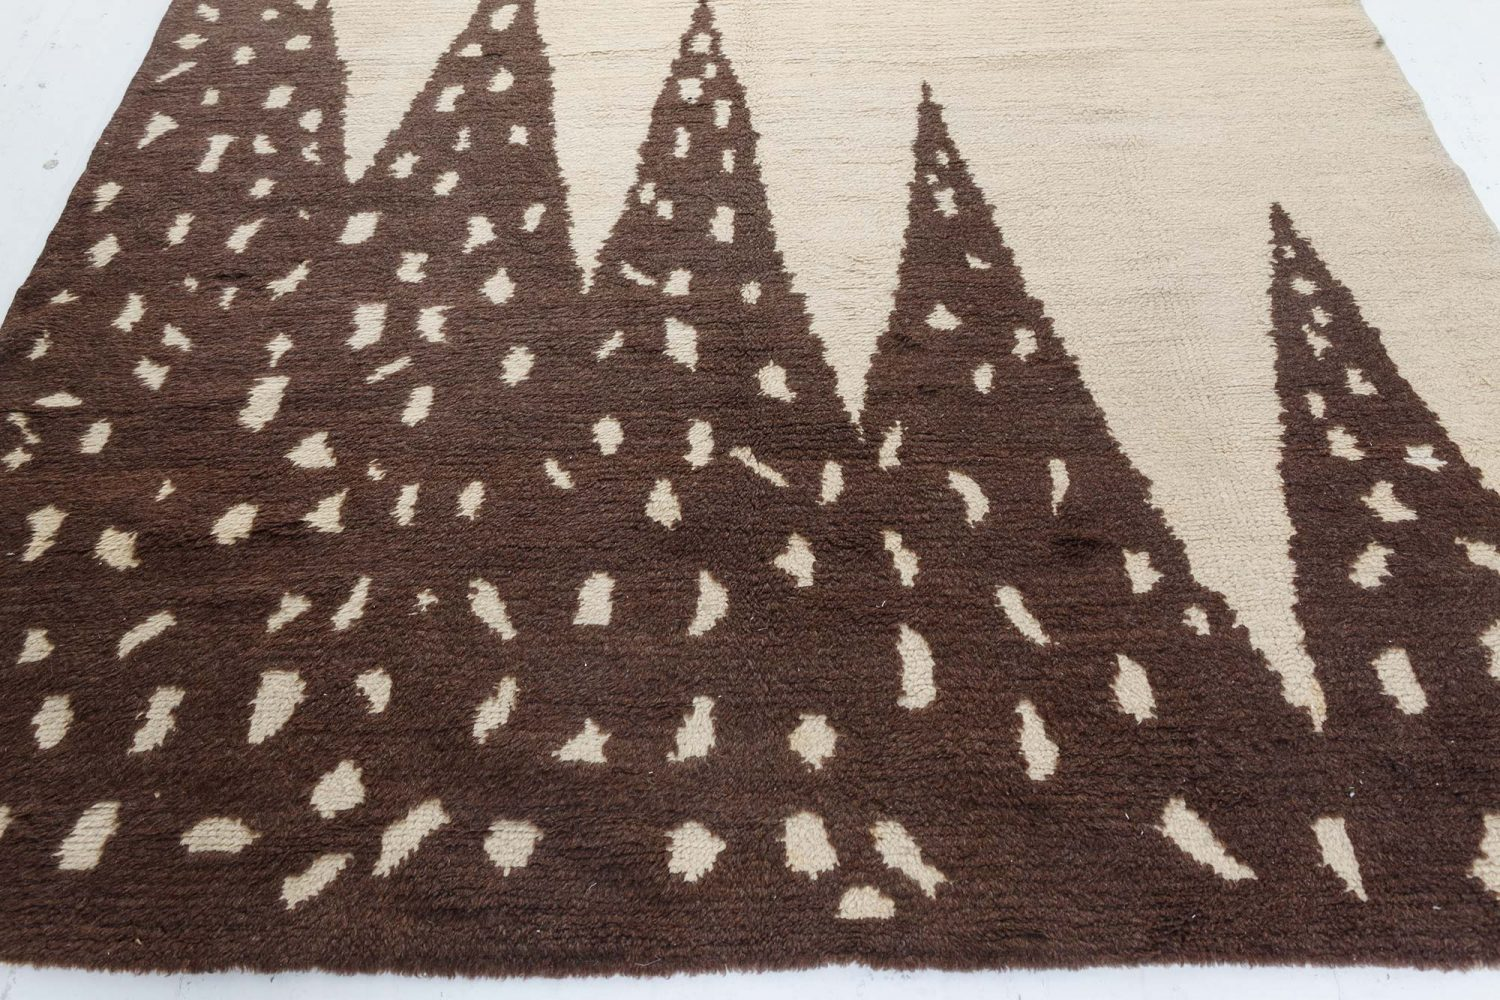 Vintage Art Deco Beige and Brown Hand Knotted Wool Rug BB7409